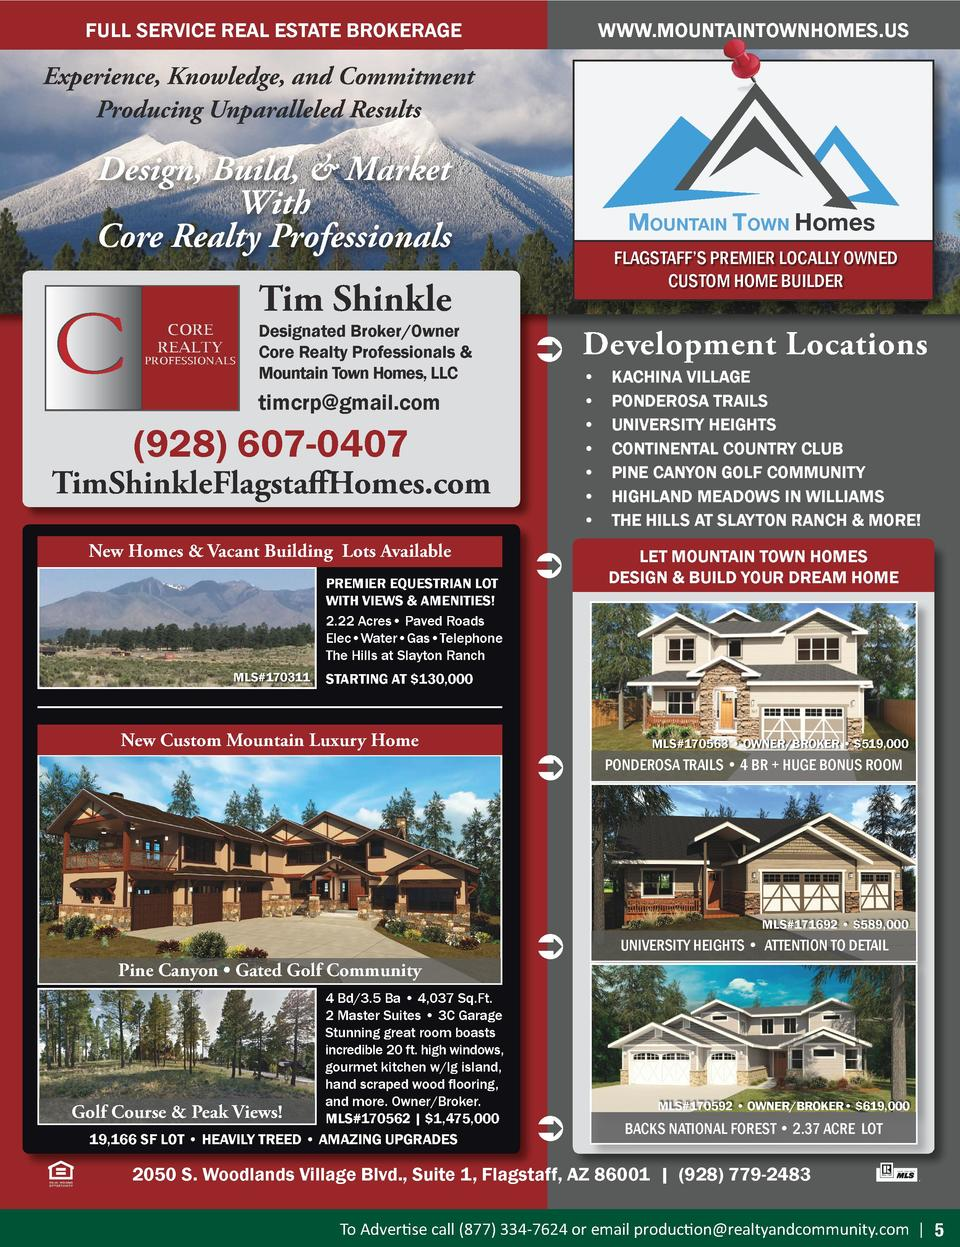 WWW.MOUNTAINTOWNHOMES.US  FULL SERVICE REAL ESTATE BROKERAGE  Experience, Knowledge, and Commitment Producing Unparalleled...